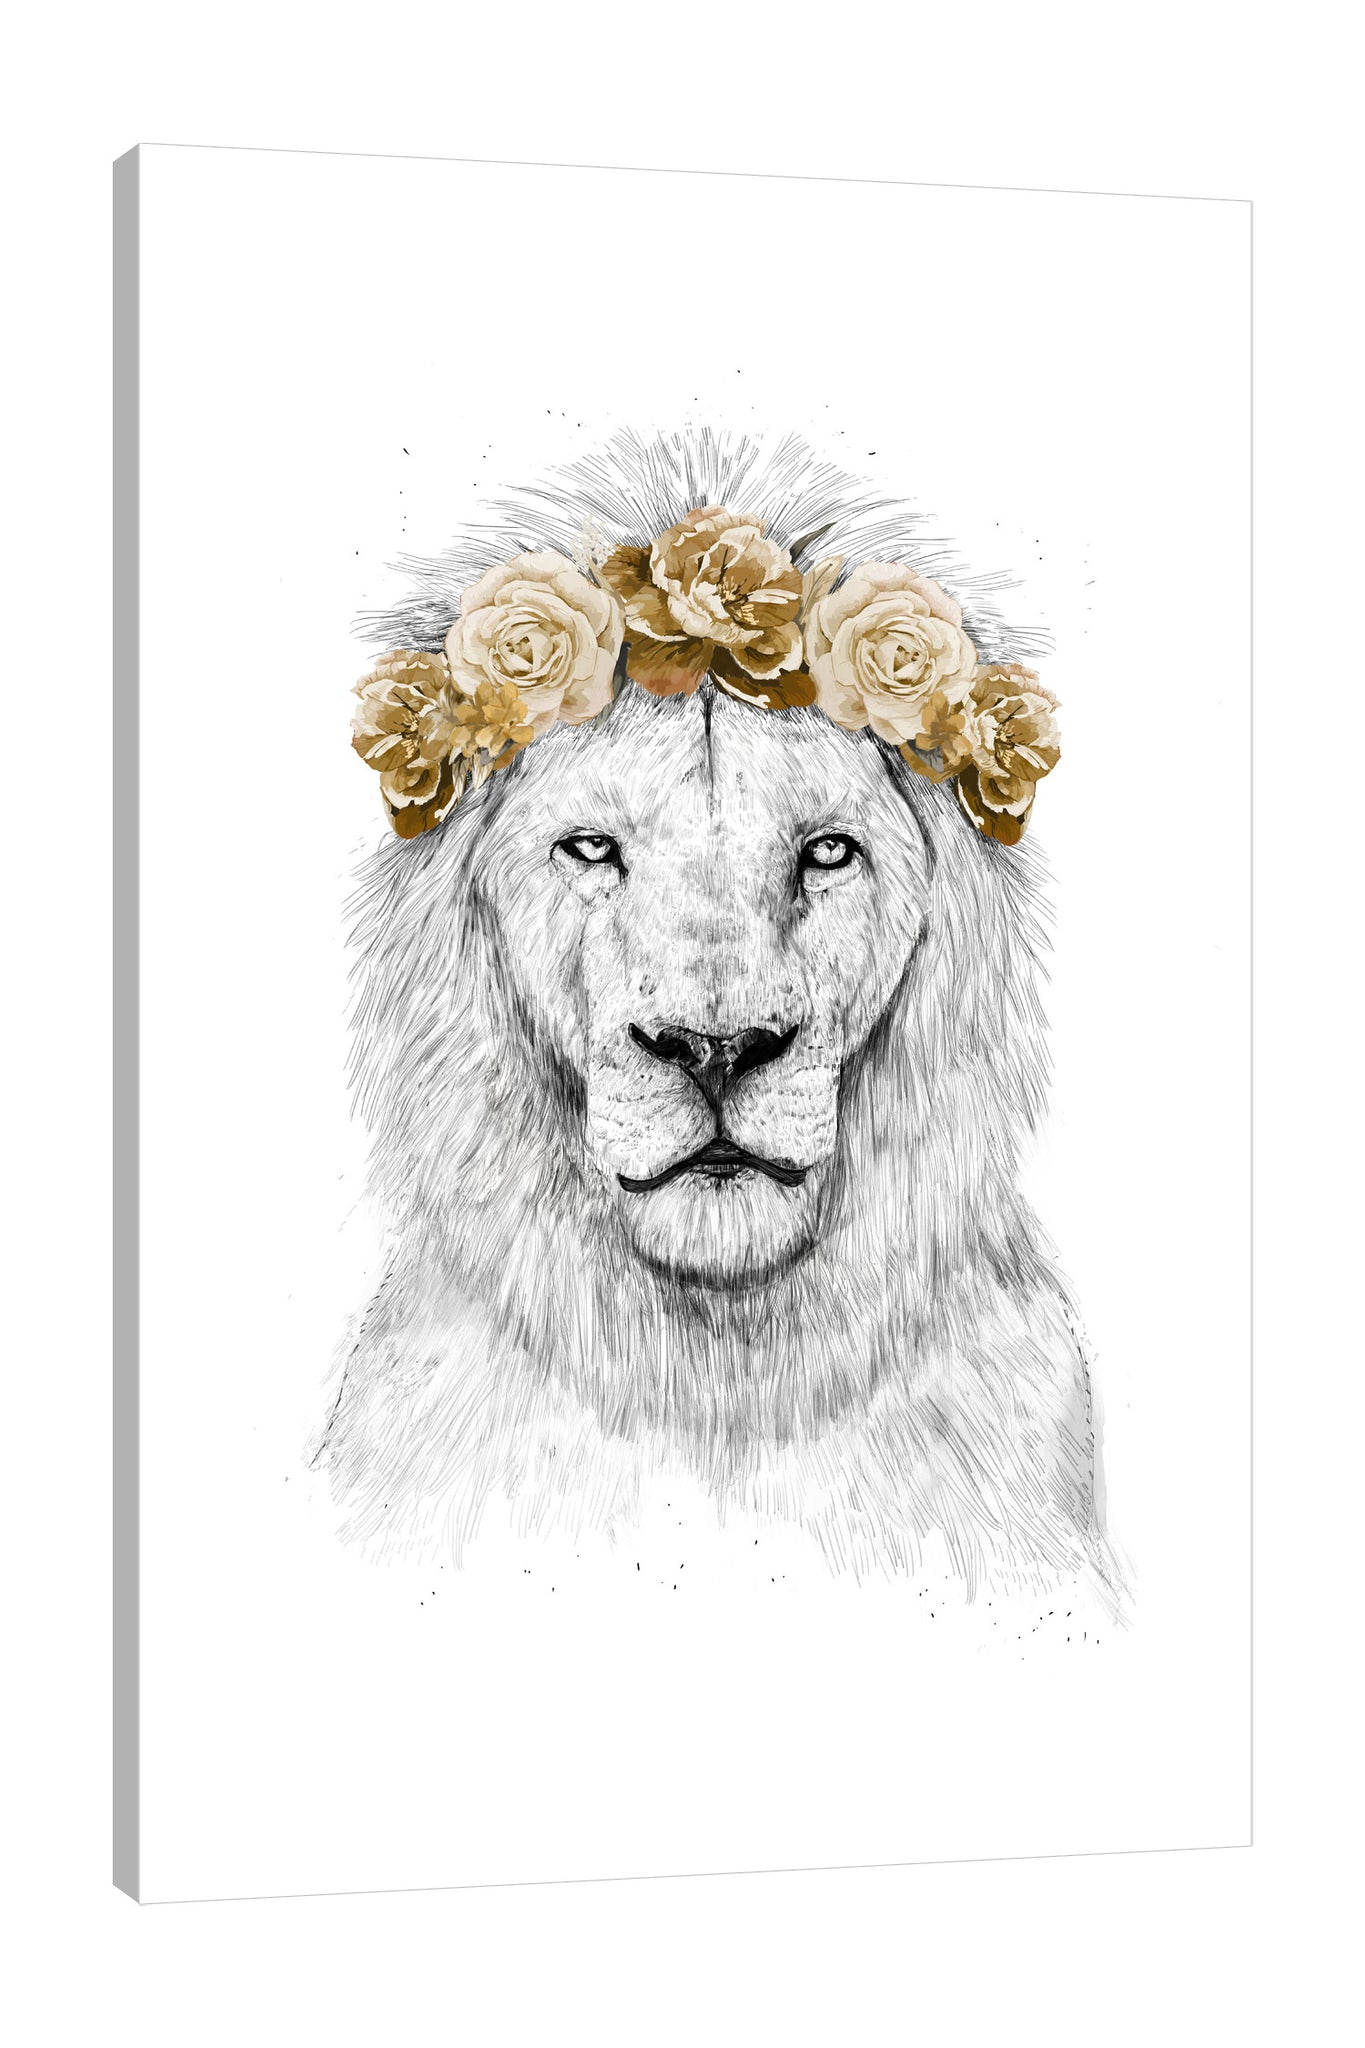 Balazs-Solti,Modern & Contemporary,Animals,Floral & Botanical,animals,animal,lion,lions,floral,florals,flowers,flower,gold,yellow,Salmon Pink,Blue,Red,White